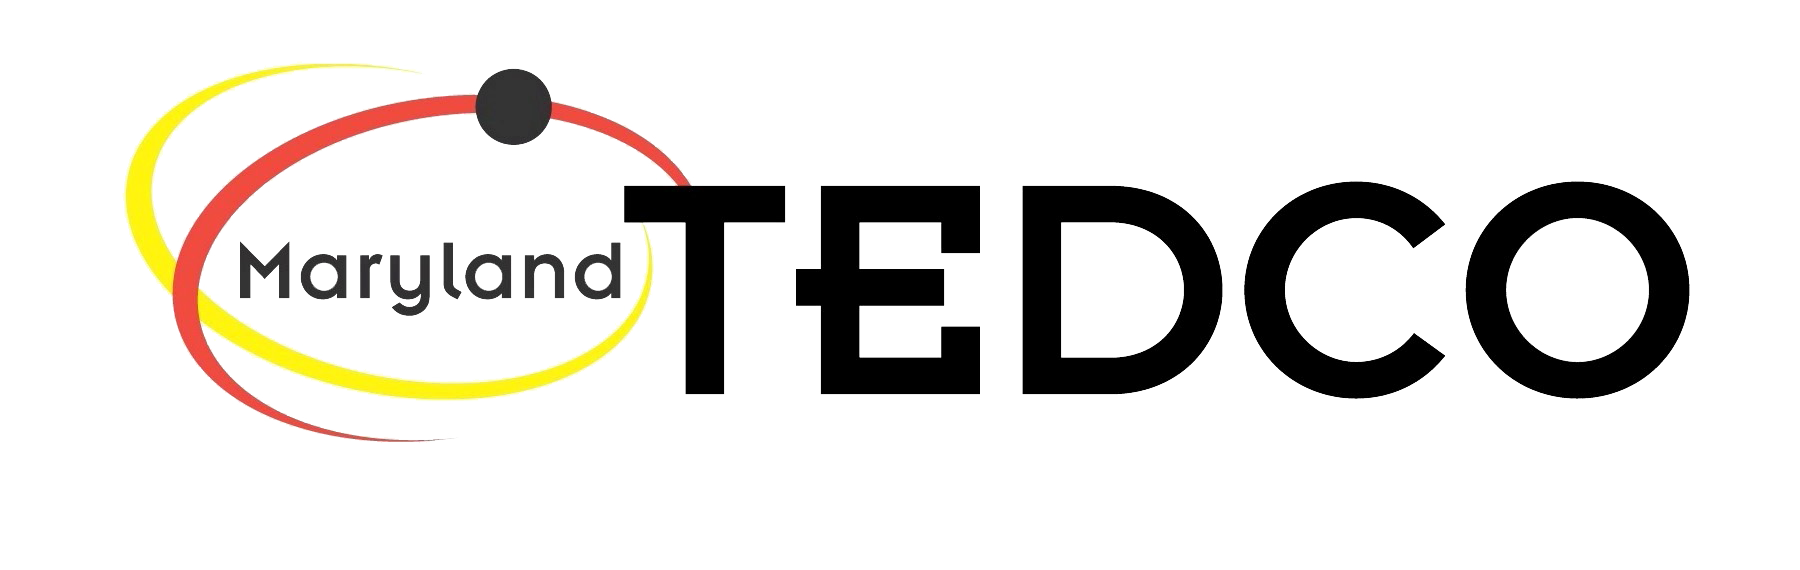 tedco-logo-color-ns.png